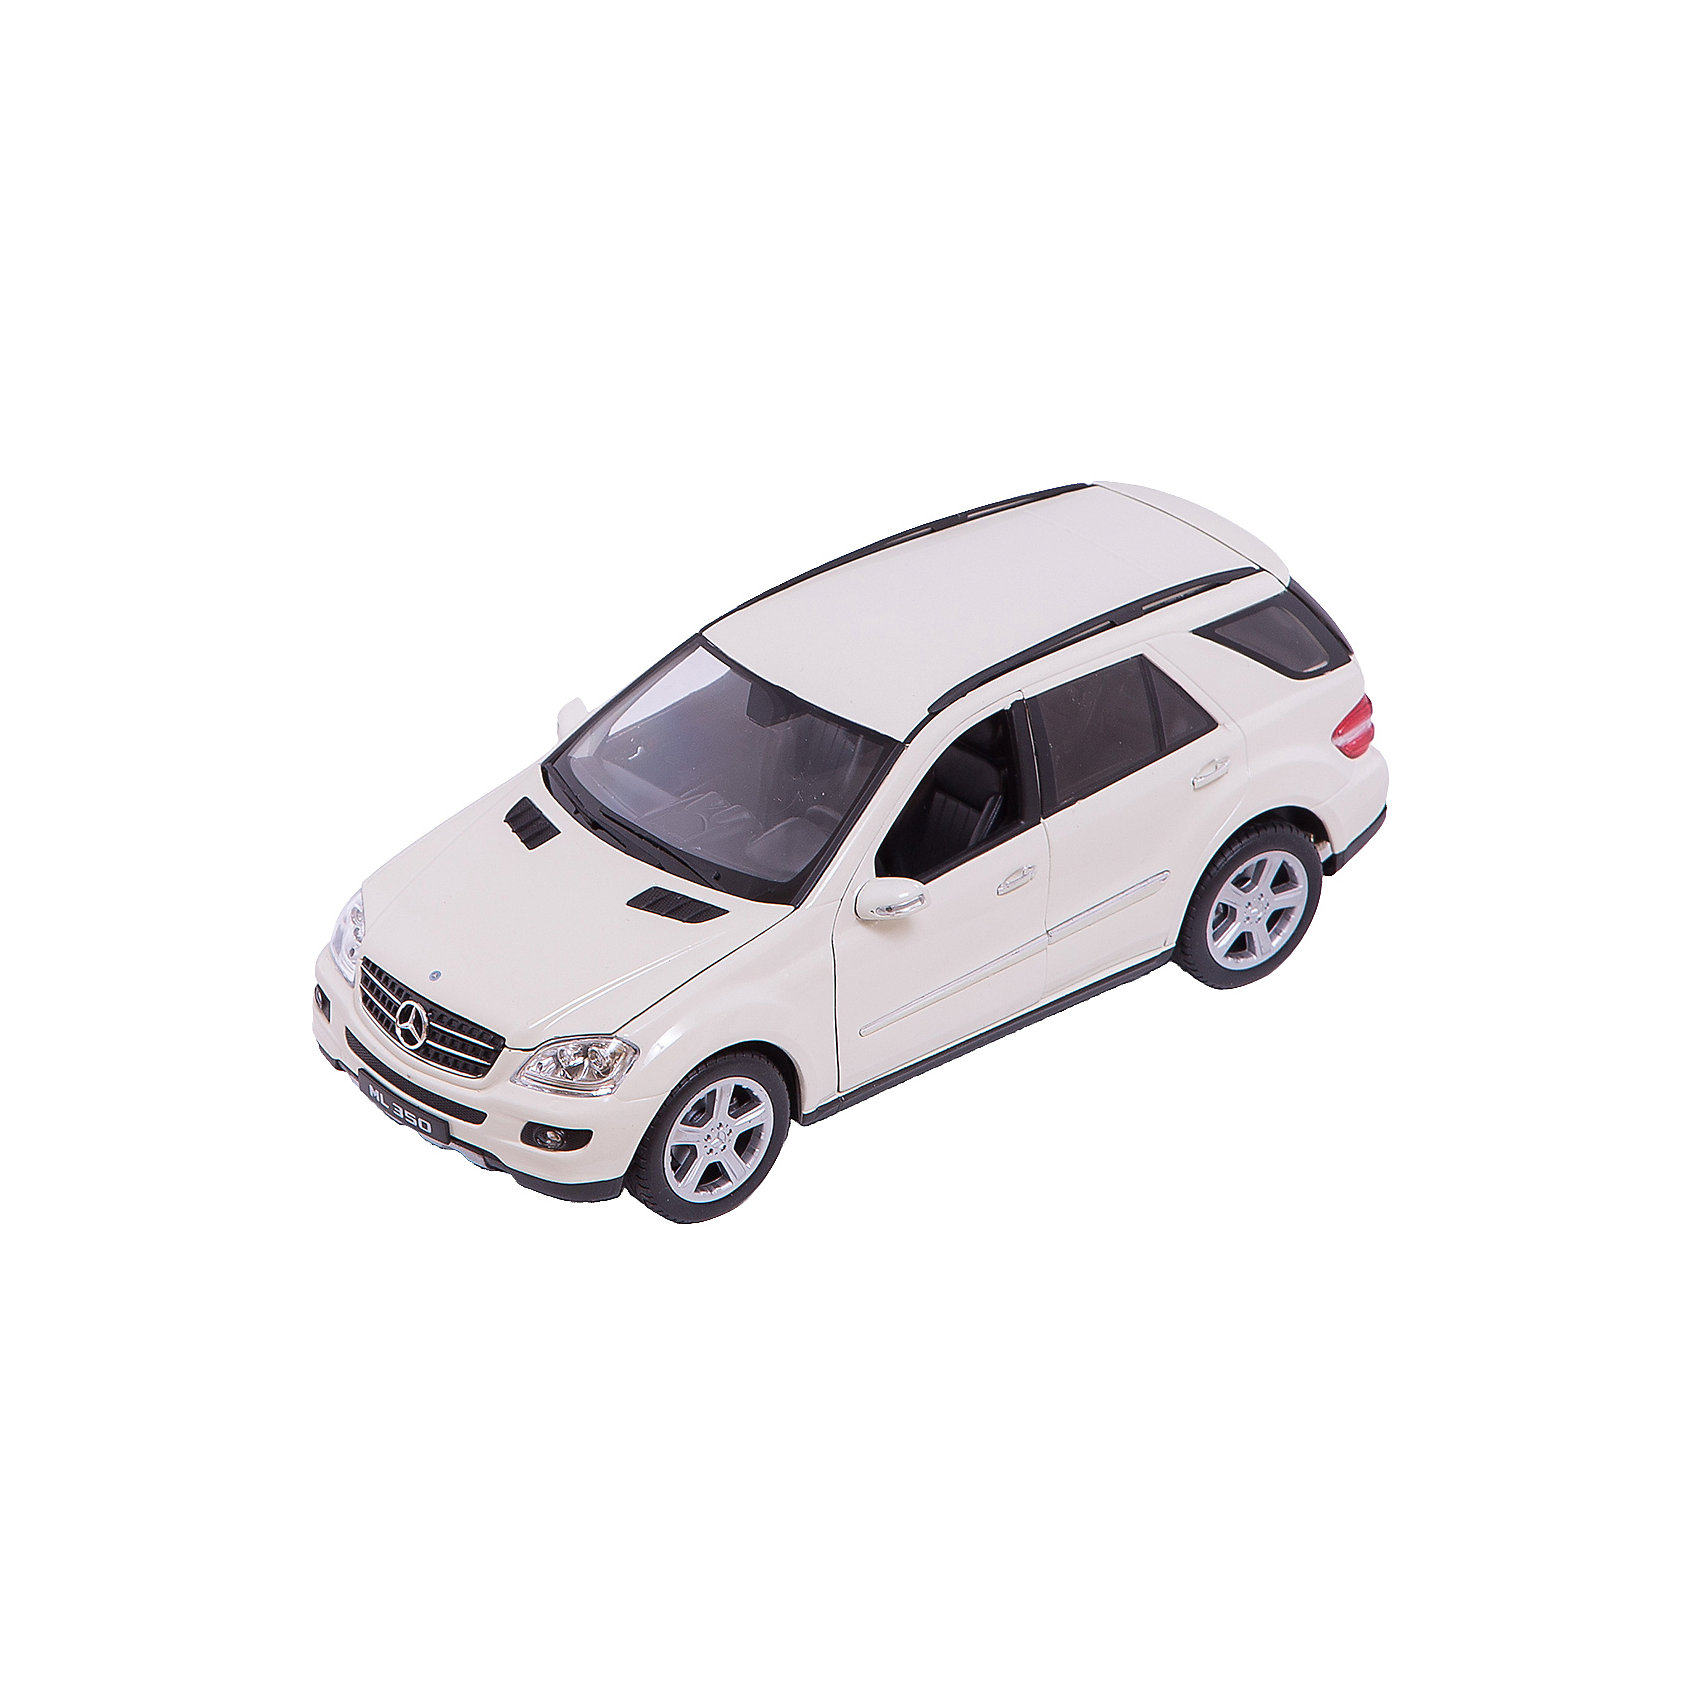 Welly Welly Модель машины 1:18 Mercedes-Benz ML350 accessories fit for 2013 2014 2015 2016 hyundai grand santa fe side door line garnish body molding trim cover